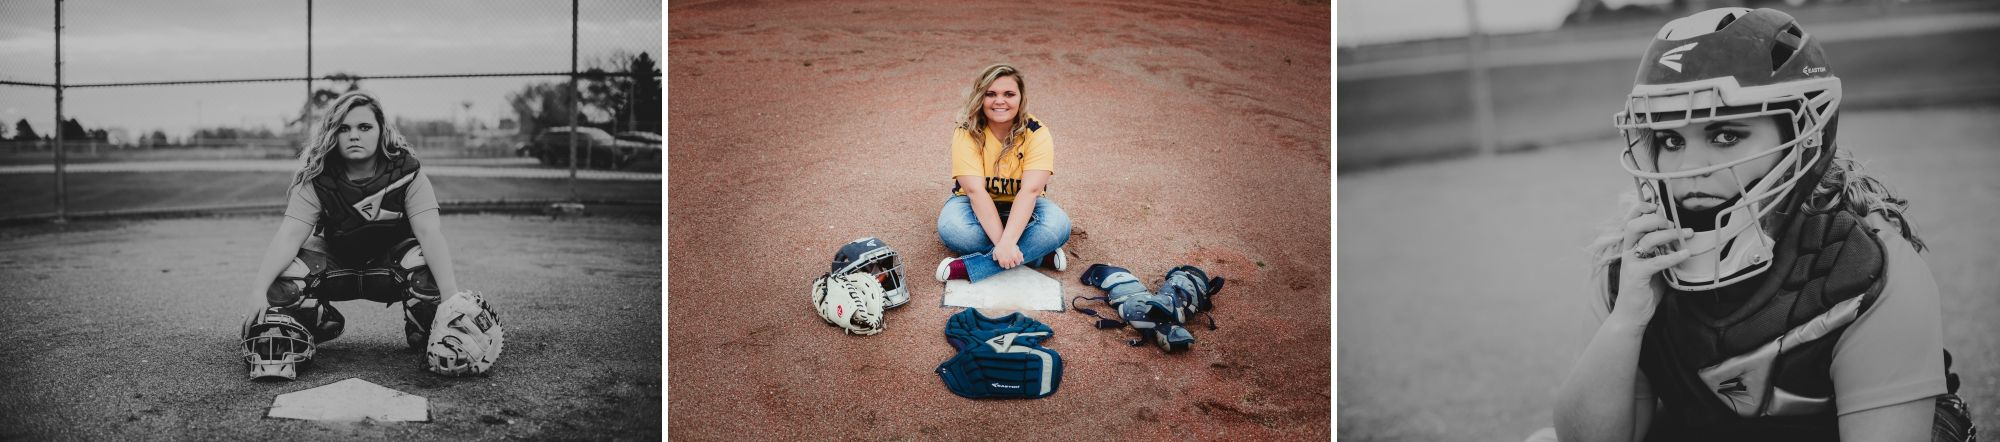 High school senior girl near the home plate of a softball field wearing catcher's gear.